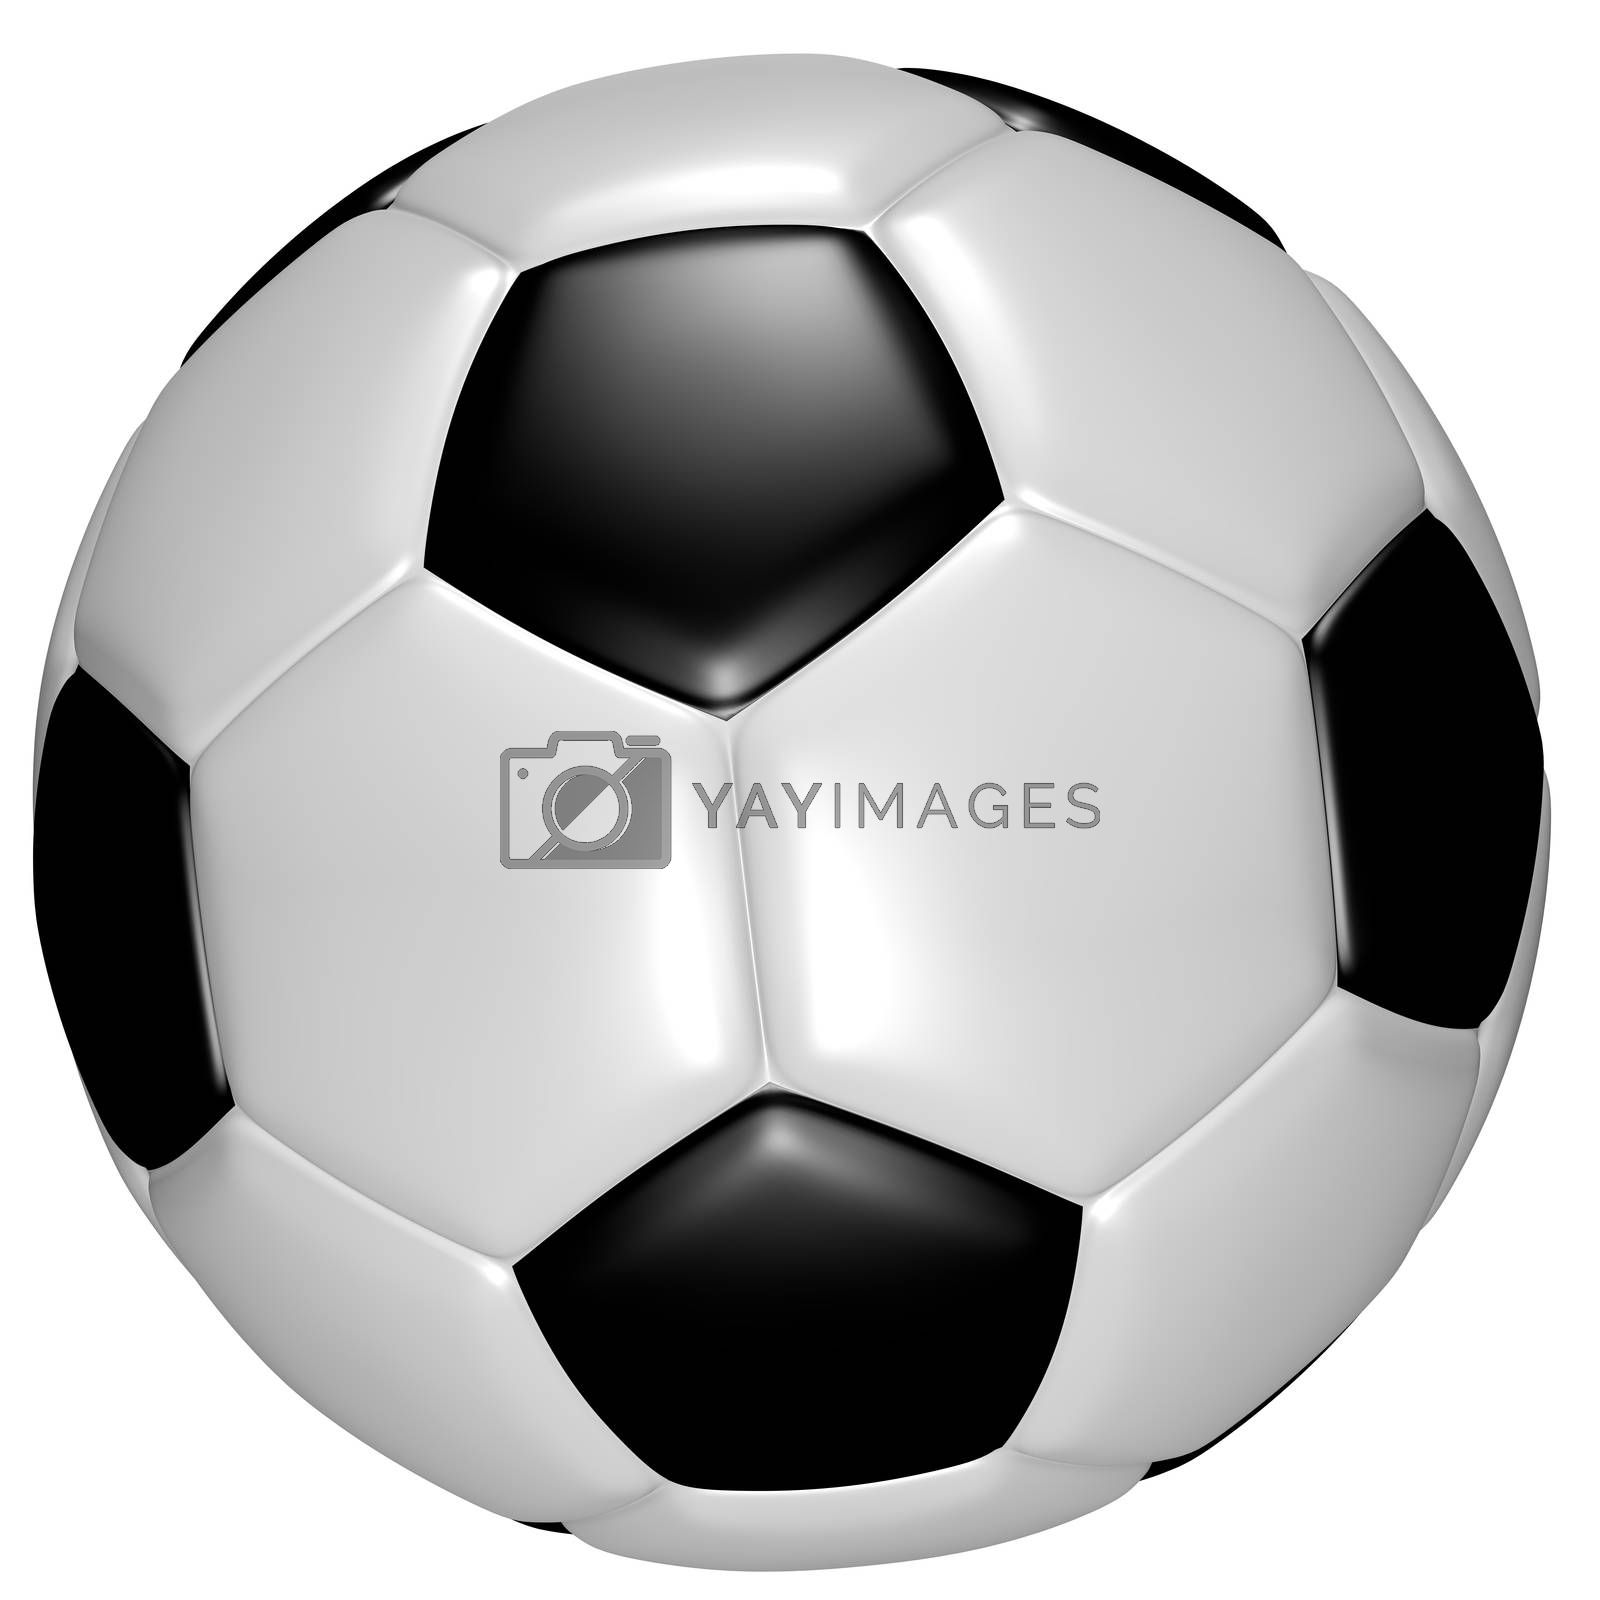 A very high resolution (100 megapixels) CGI image of a soccer ball on a white background.